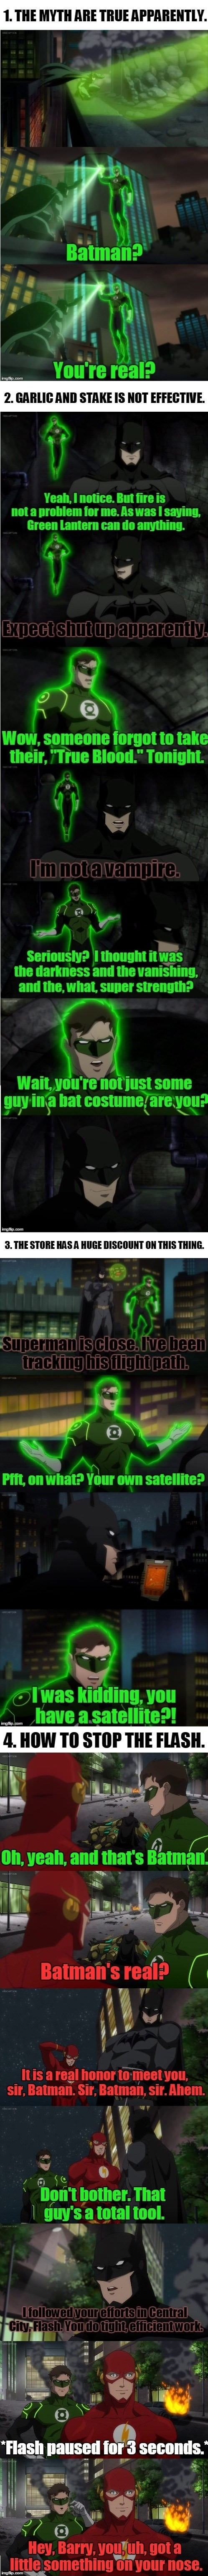 Reaction of Superhero to Batman the first time they meet him in Justice League War